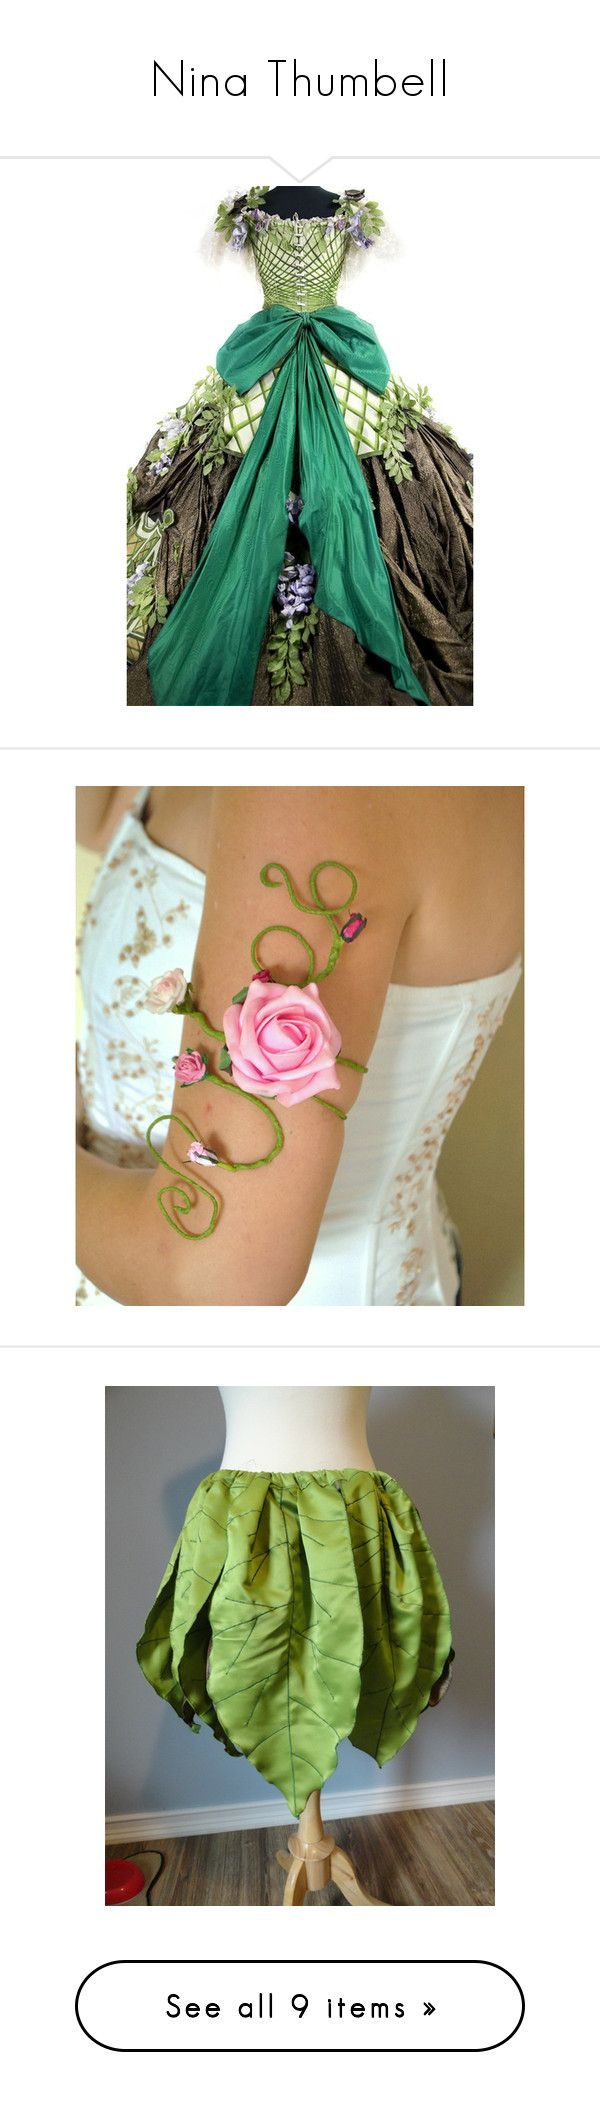 """""""Nina Thumbell"""" by wicked-elsa ❤ liked on Polyvore featuring jewelry, bracelets, pink bangles, pink prom jewelry, green prom jewelry, arm cuff jewelry, rose jewelry, costumes, rose costume and queen halloween costume"""